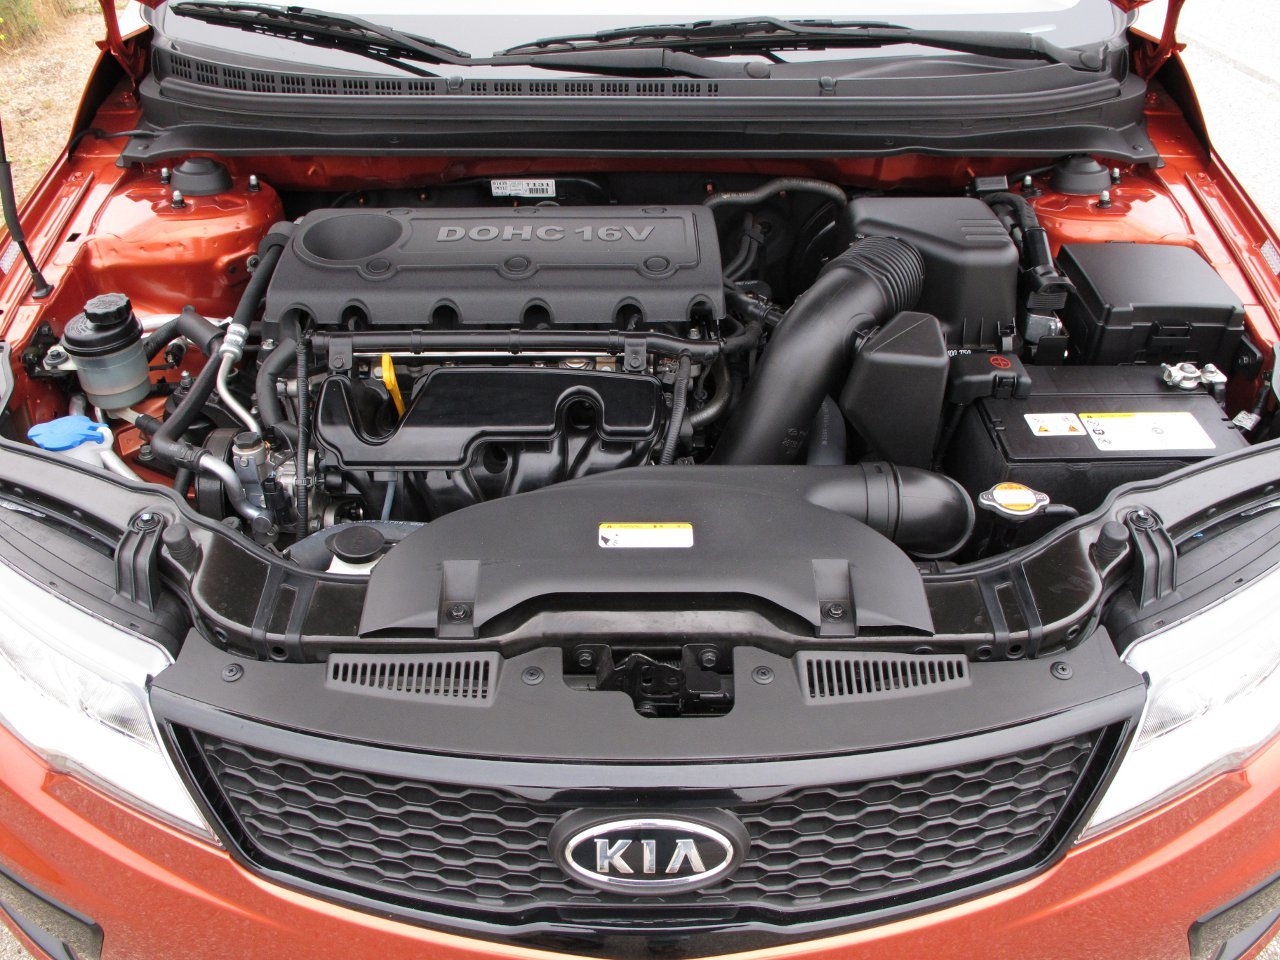 Kia Forte engine #1